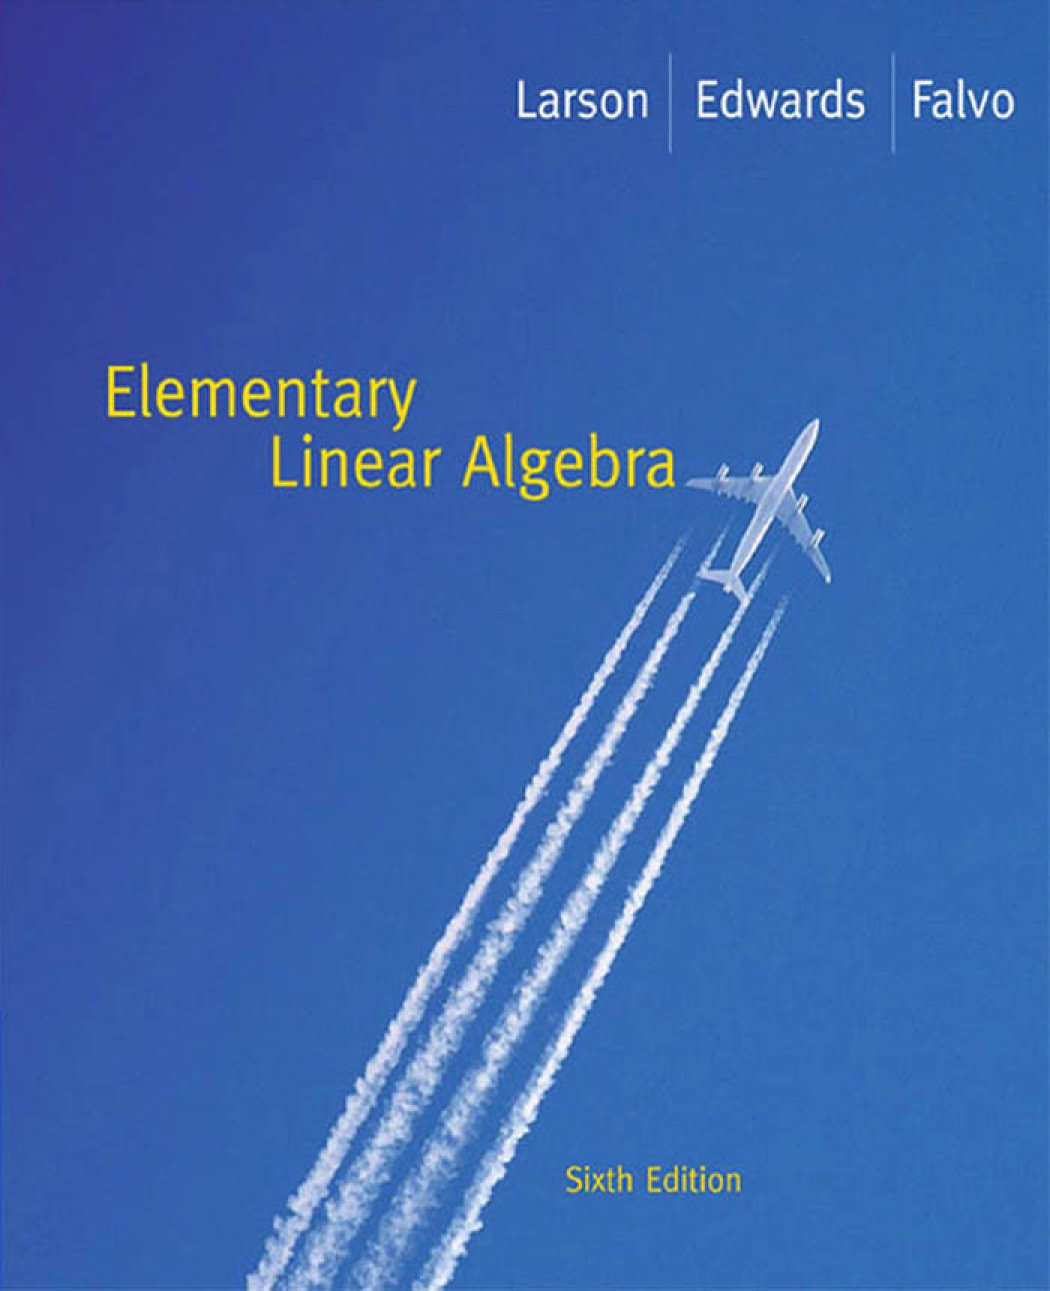 Elementary Linear Algebra: Ron; Falvo, David C. Larson: 9780547004815:  Amazon.com: Books